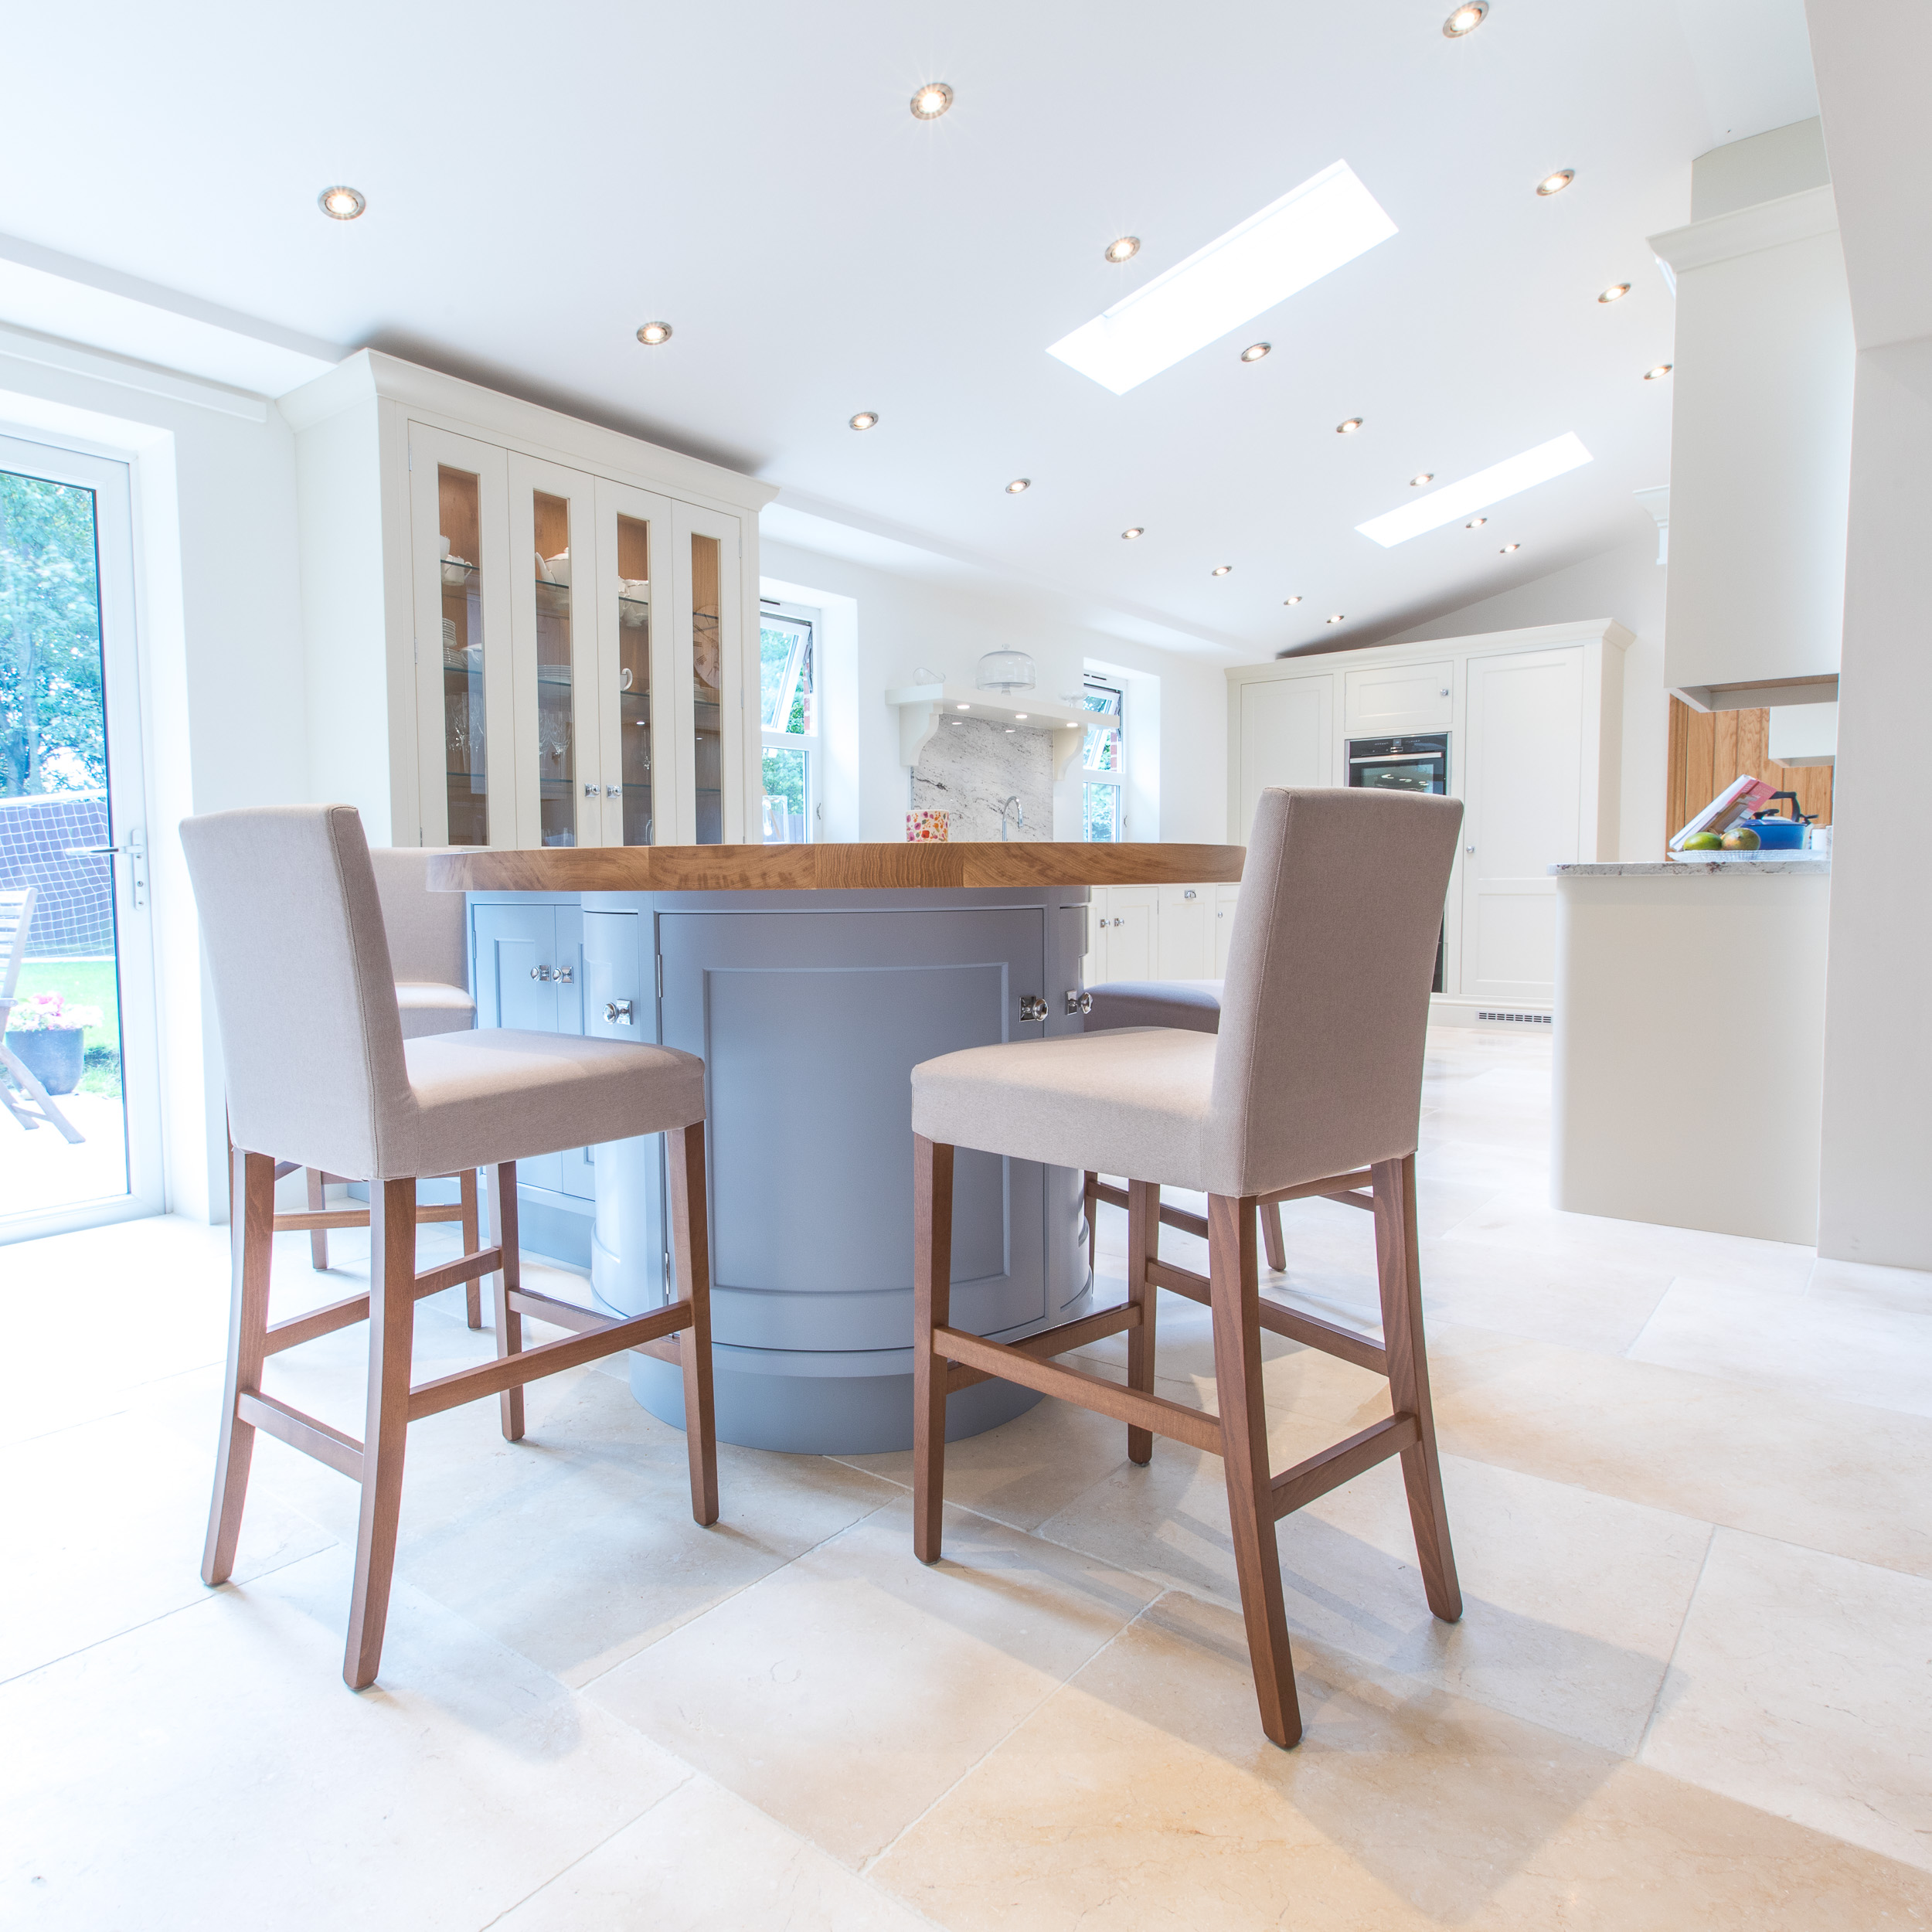 Bespoke, Hand-painted Kitchens In Sheffield By Concept